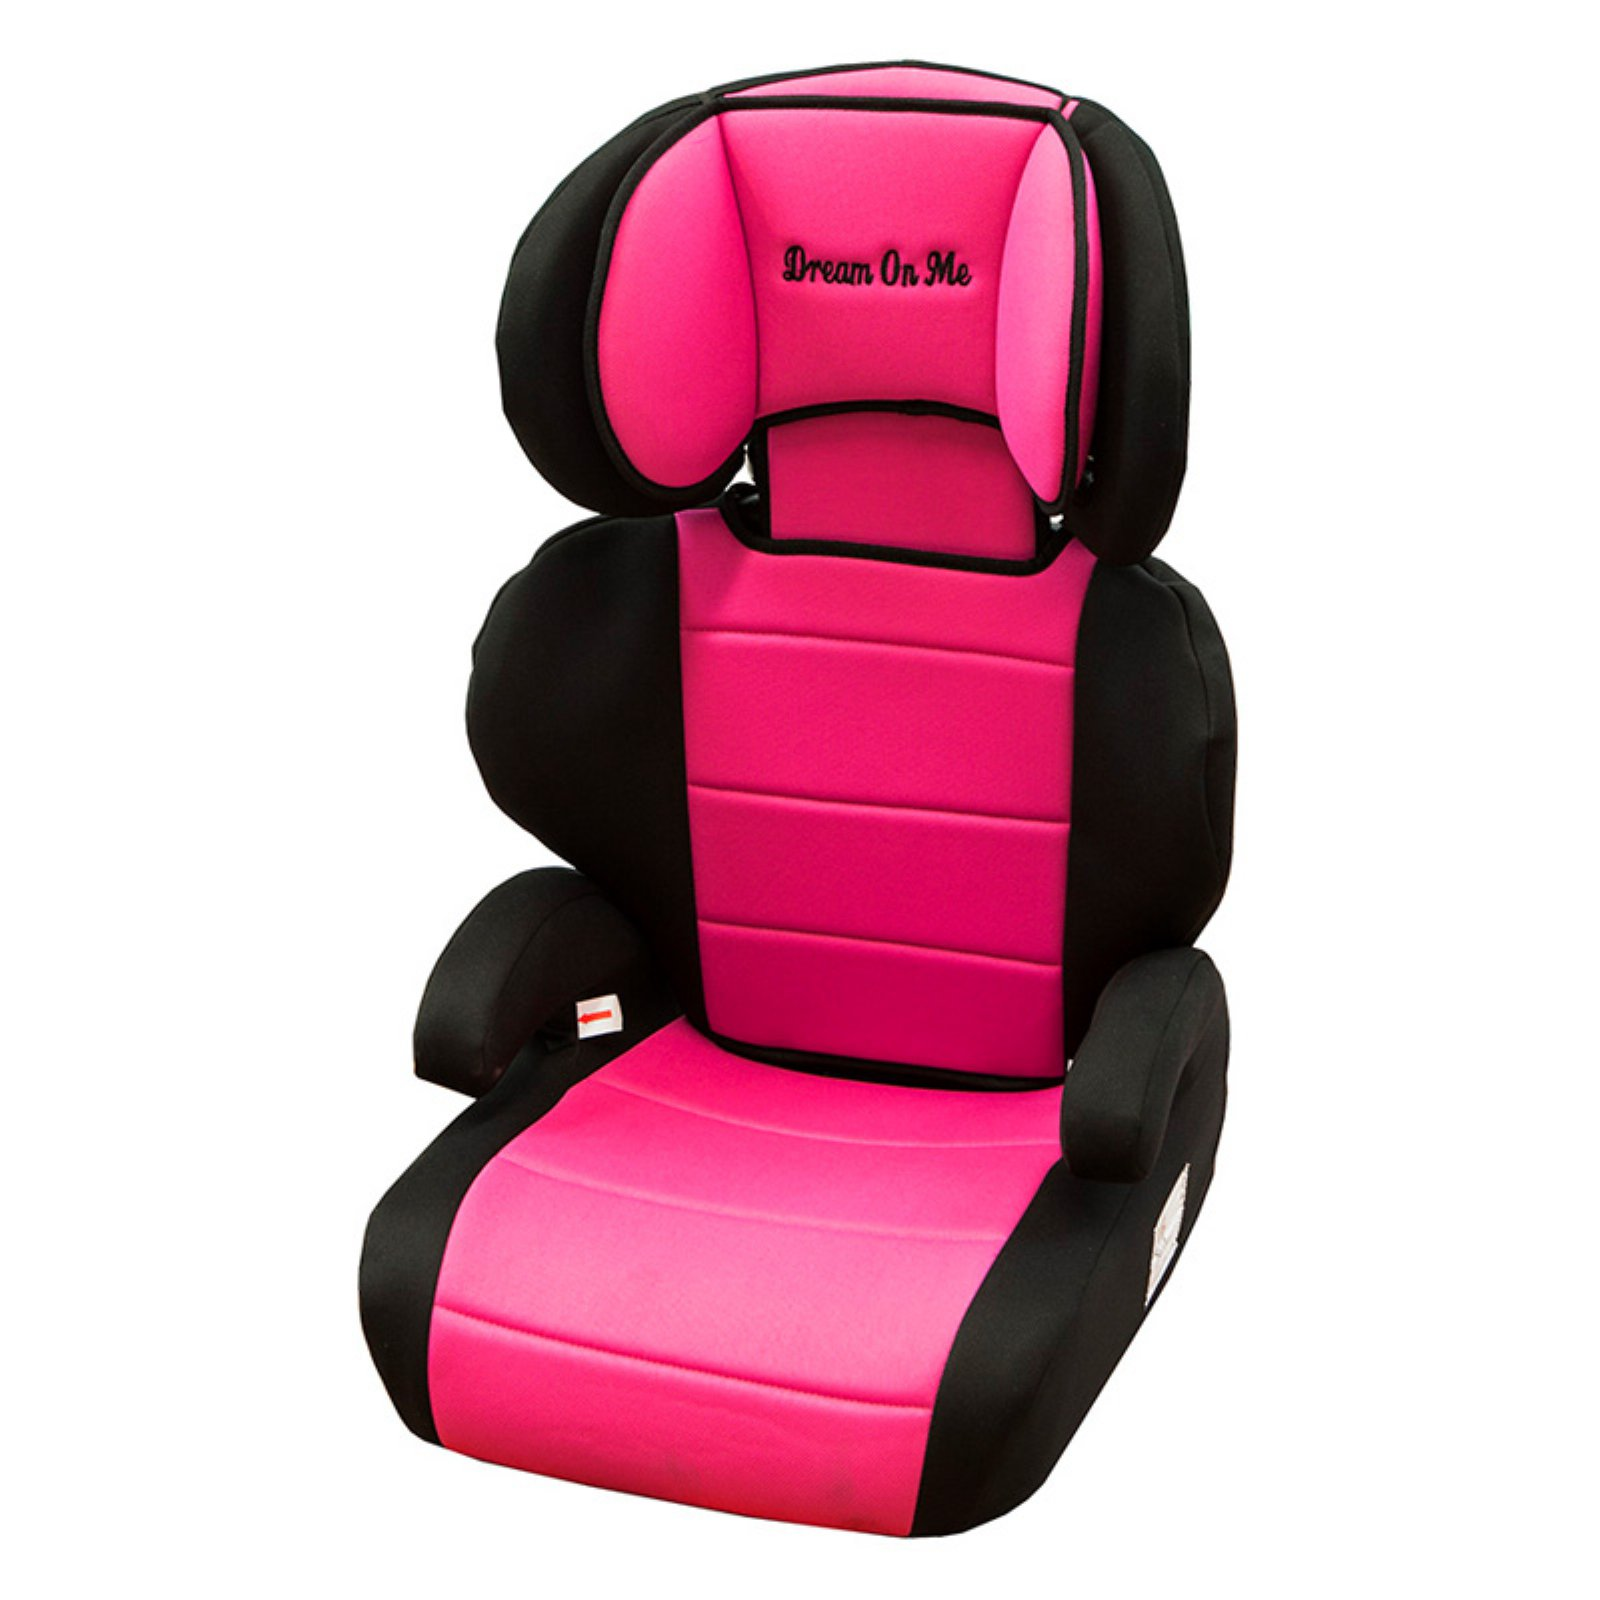 Dream On Me, Deluxe Booster Car Seat